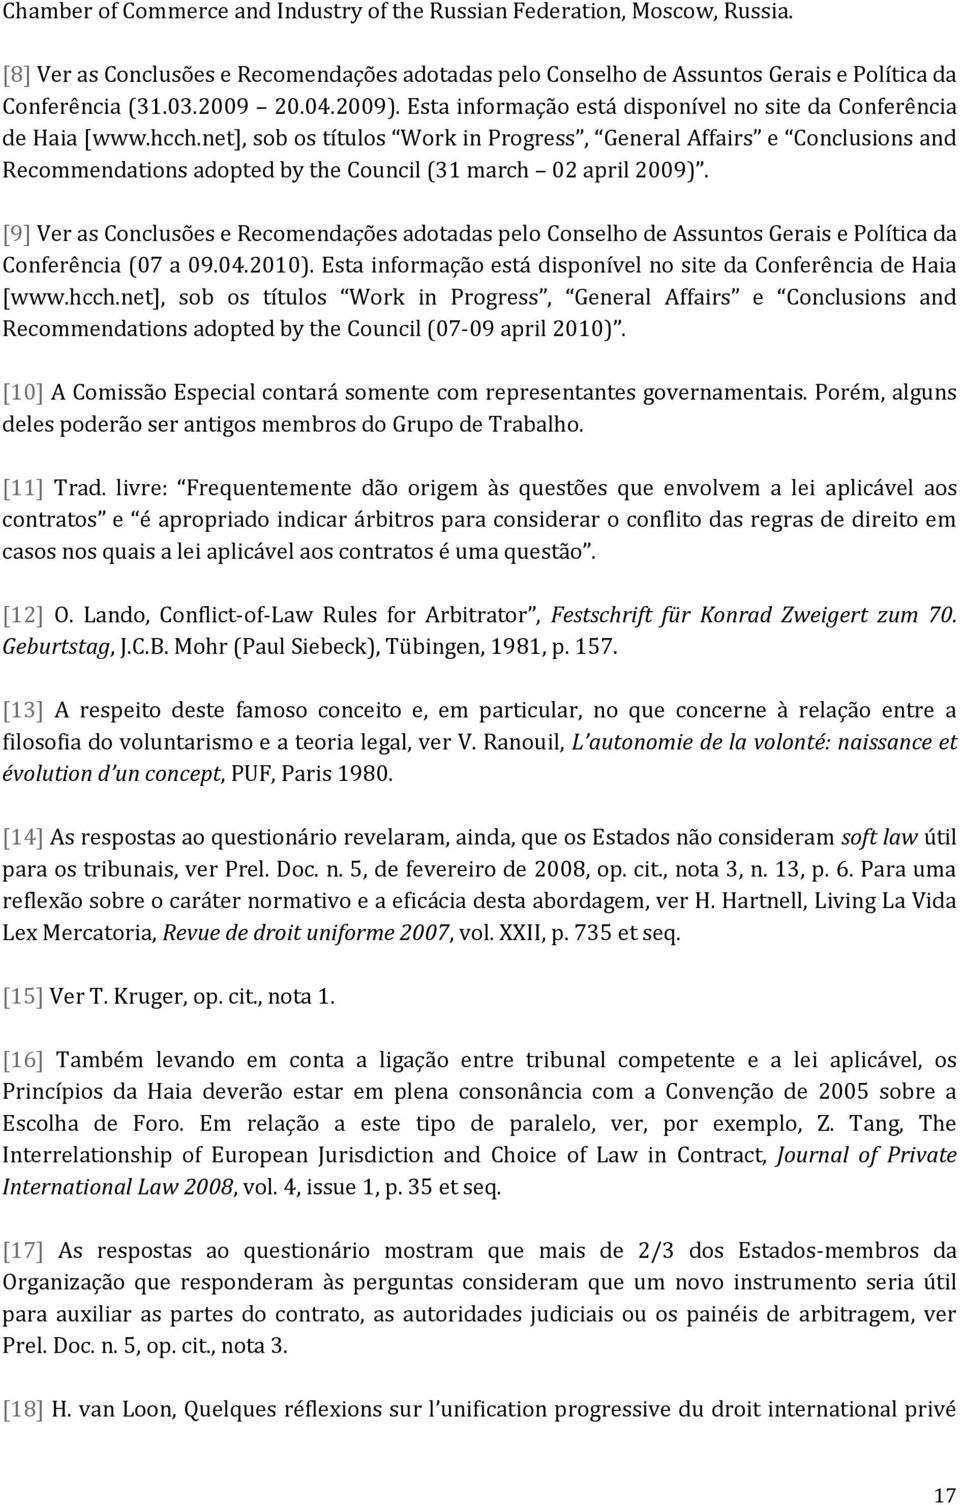 net], sob os títulos Work in Progress, General Affairs e Conclusions and Recommendations adopted by the Council (31 march 02 april 2009).